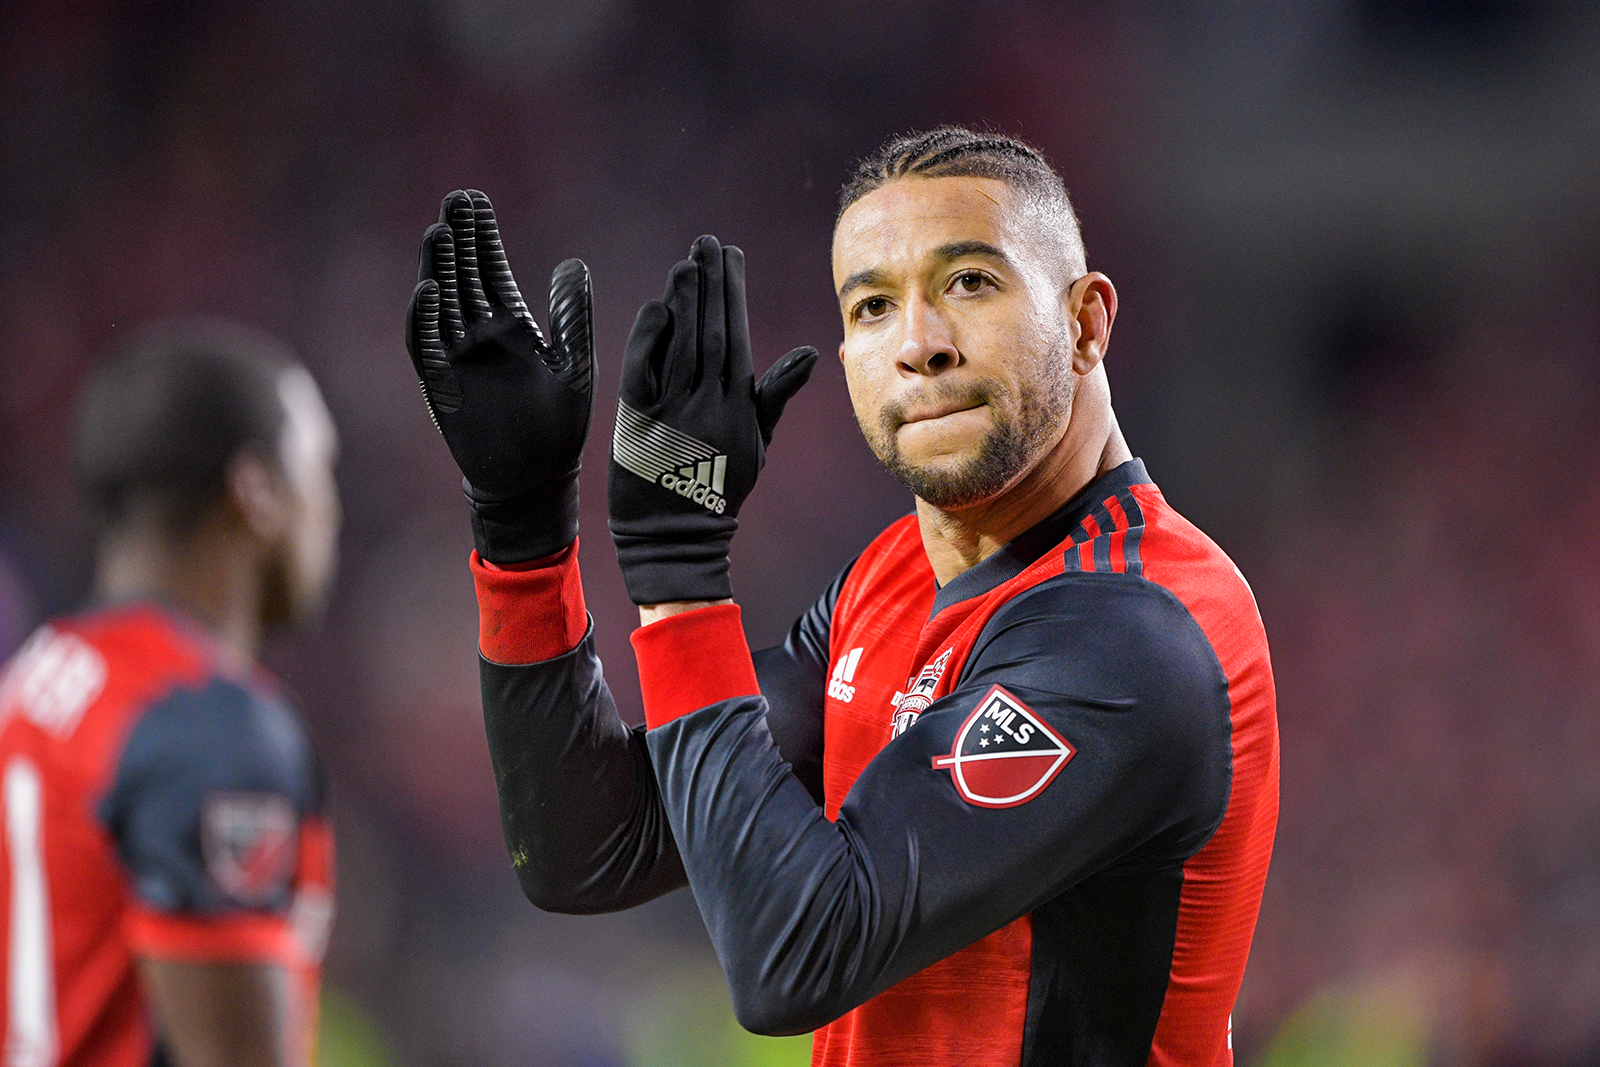 Toronto FC Defender Justin Morrow applauds during the 2017 MLS Cup Final.